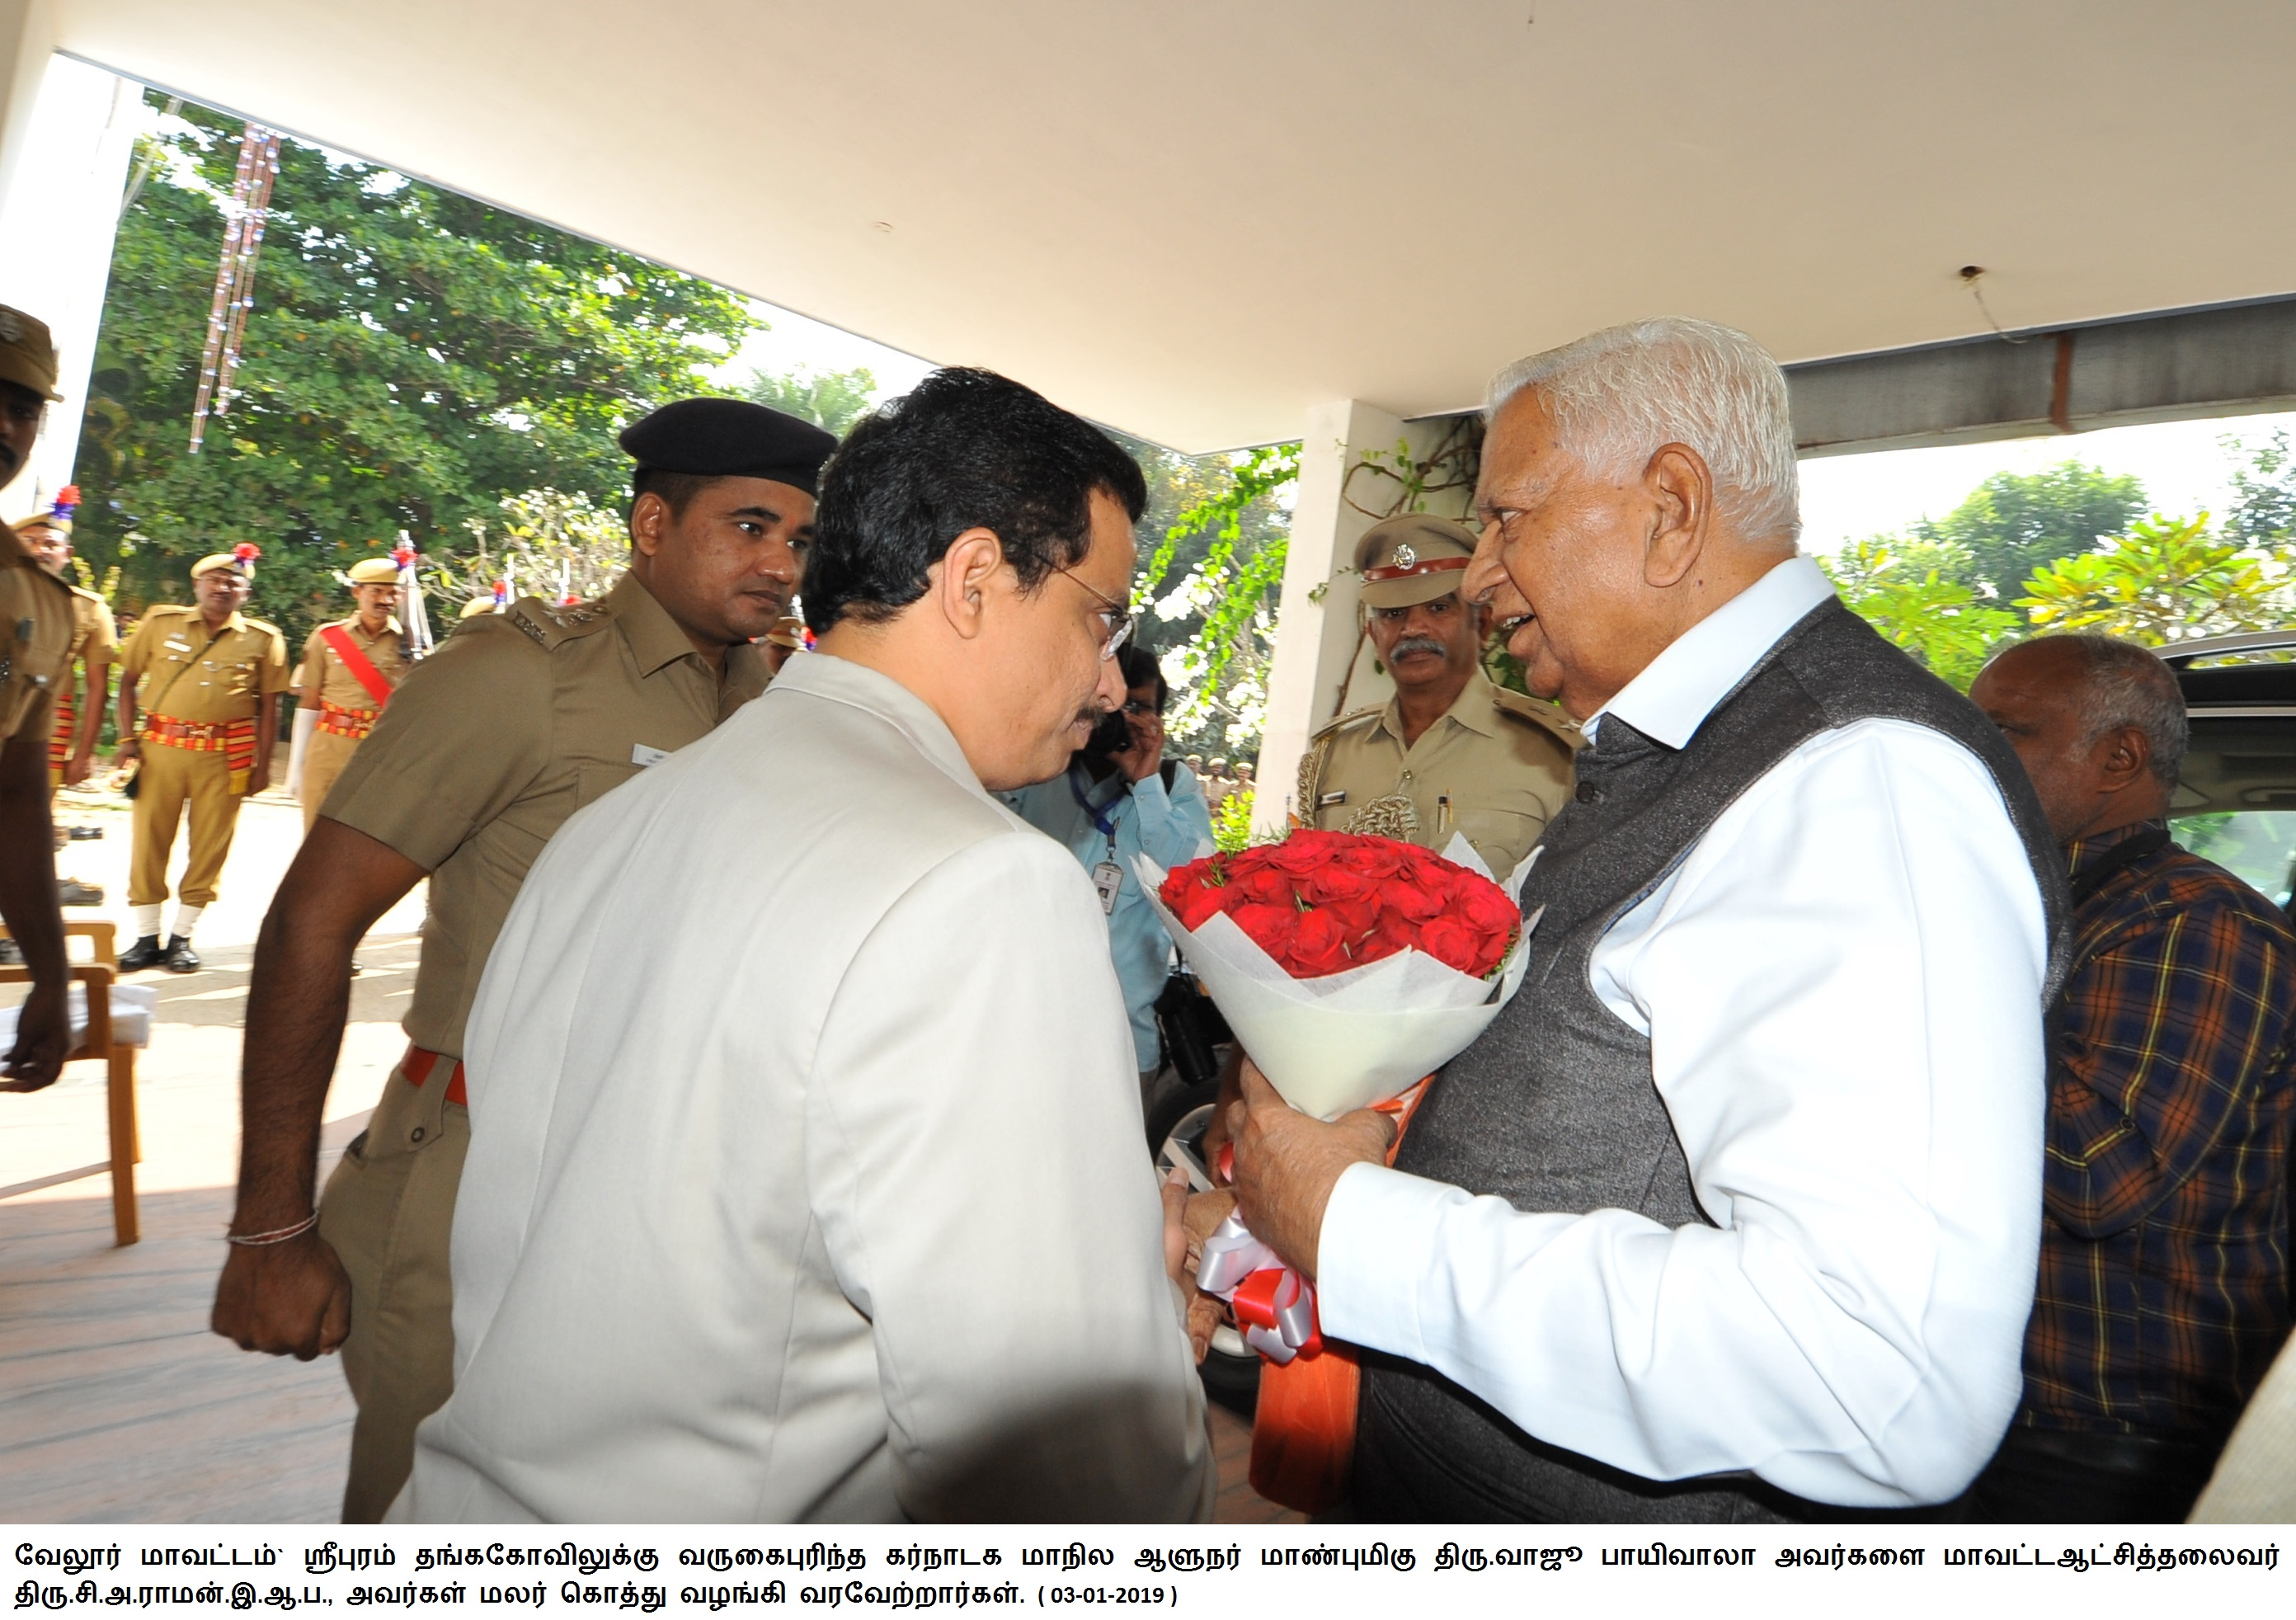 District Collector Welcoming Honourable Governor of Karnataka 03/01/2019